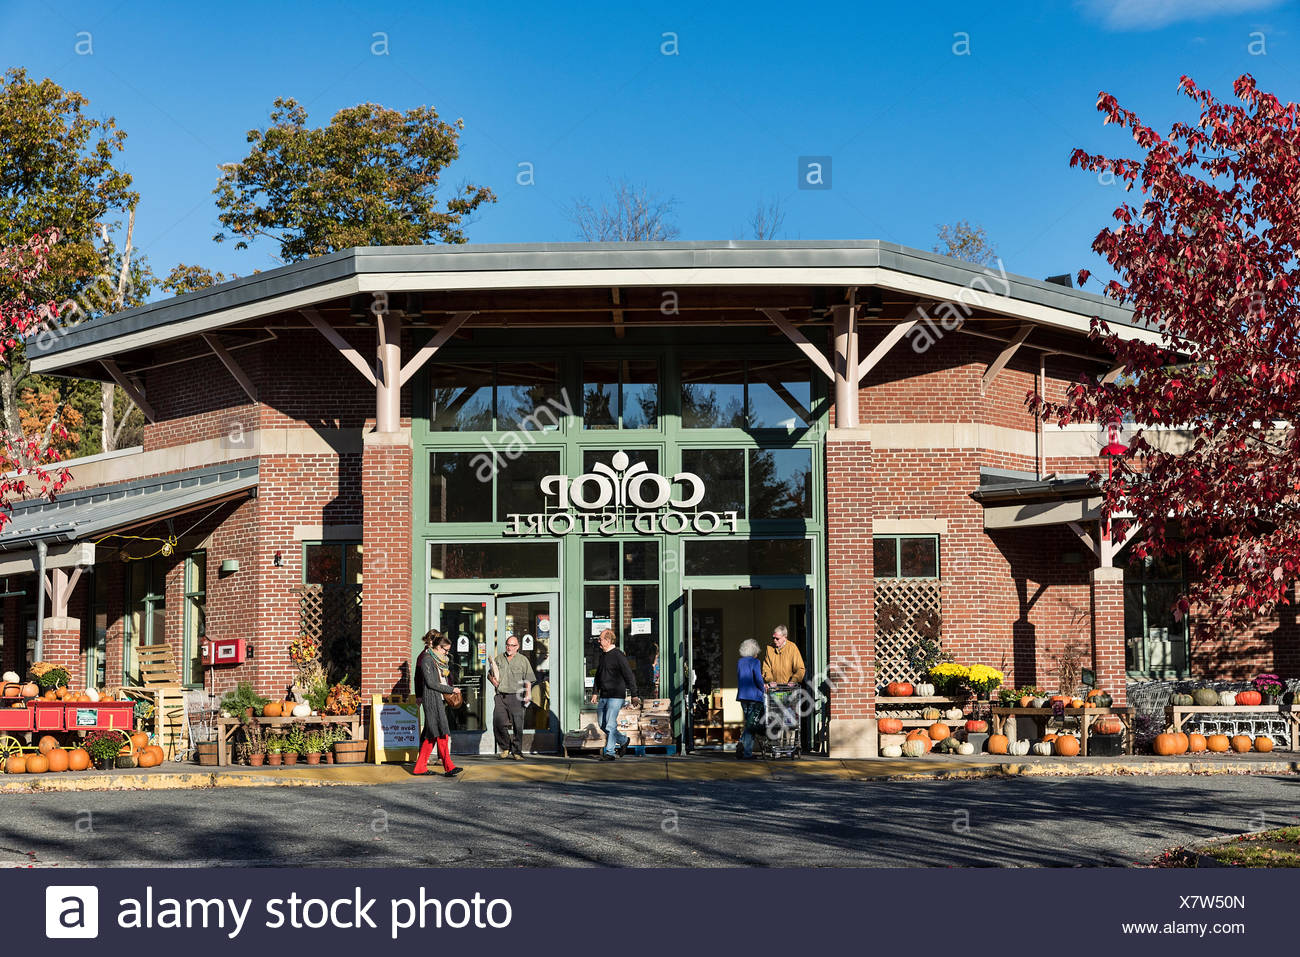 Coop, magasin d'alimentation, Liban, New Hampshire, USA Photo Stock